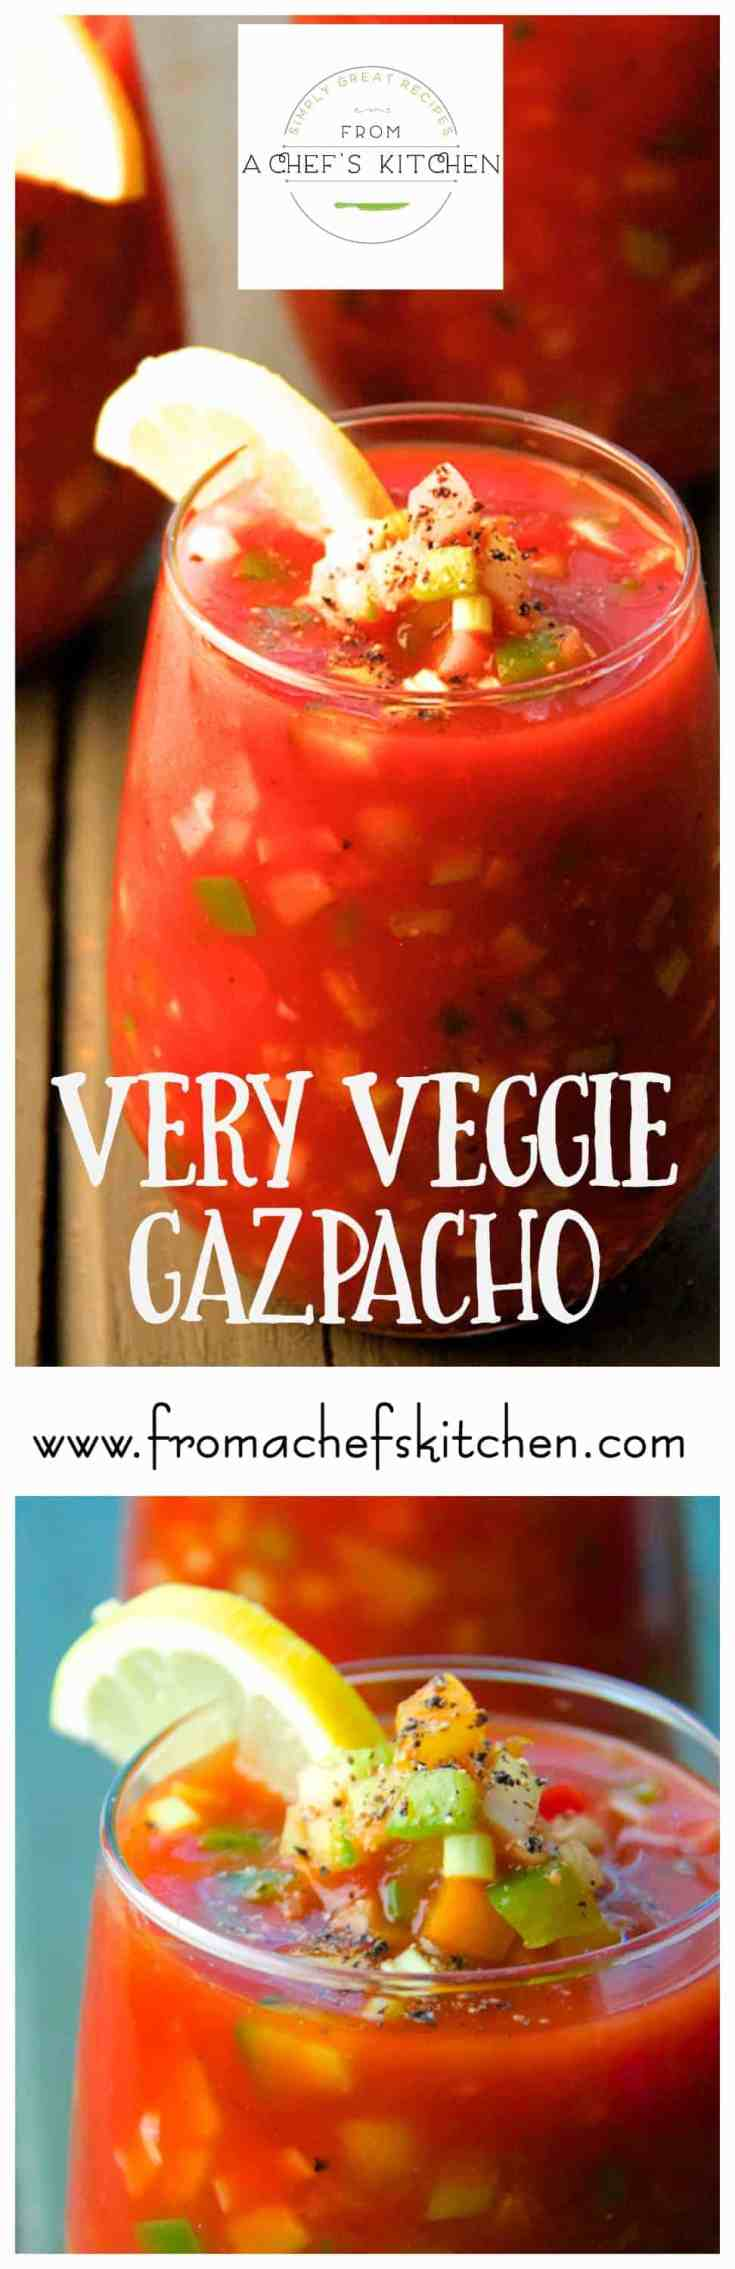 Very Veggie Gazpacho is a deliciously crunchy and chunky version of gazpacho, the classic cold Spanish soup. This version is as refreshing as it gets! Tomatoes, cucumbers, celery, bell peppers, jalapeño peppers, scallions, and plenty of garlic float in a tangy tomato juice base you'll crave all summer long! #gazpacho #vegetablegazpacho #coldsoup #chilledsoup